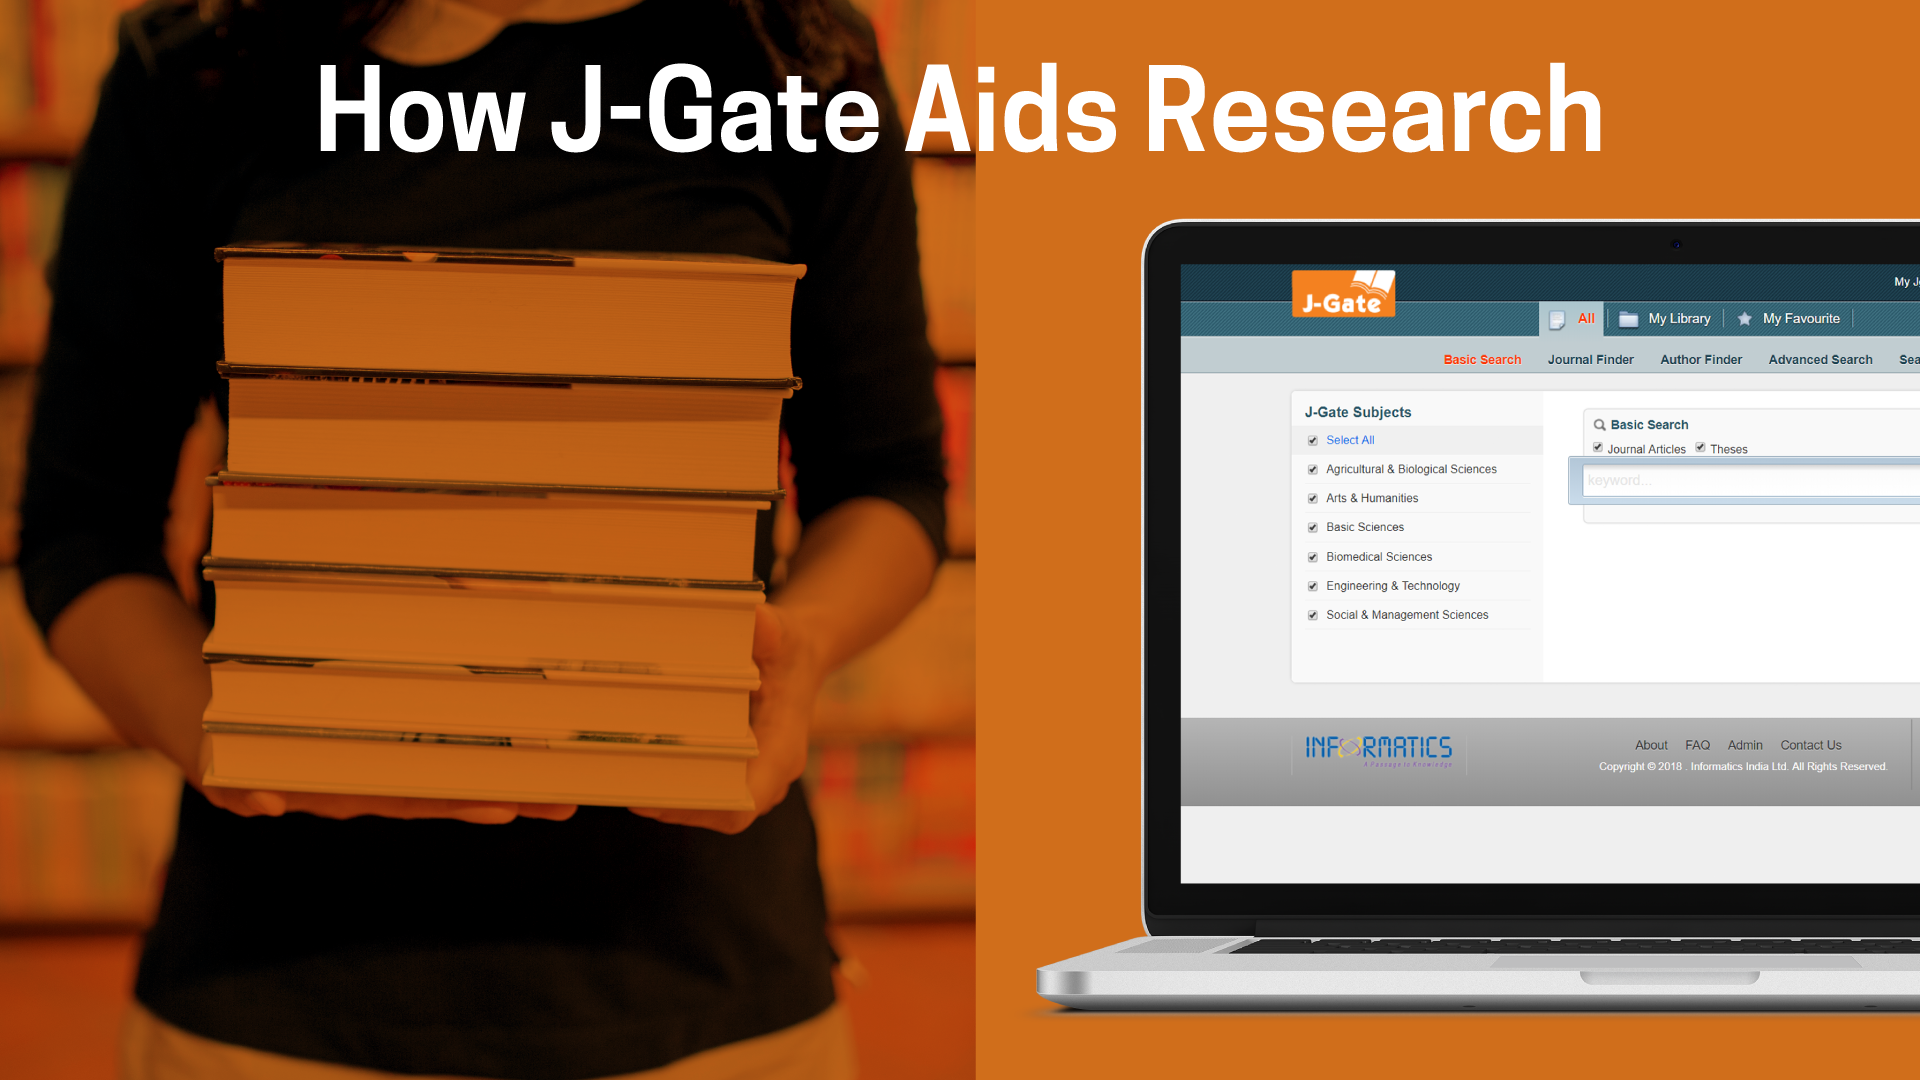 How J-Gate Aids Research – J-Gate